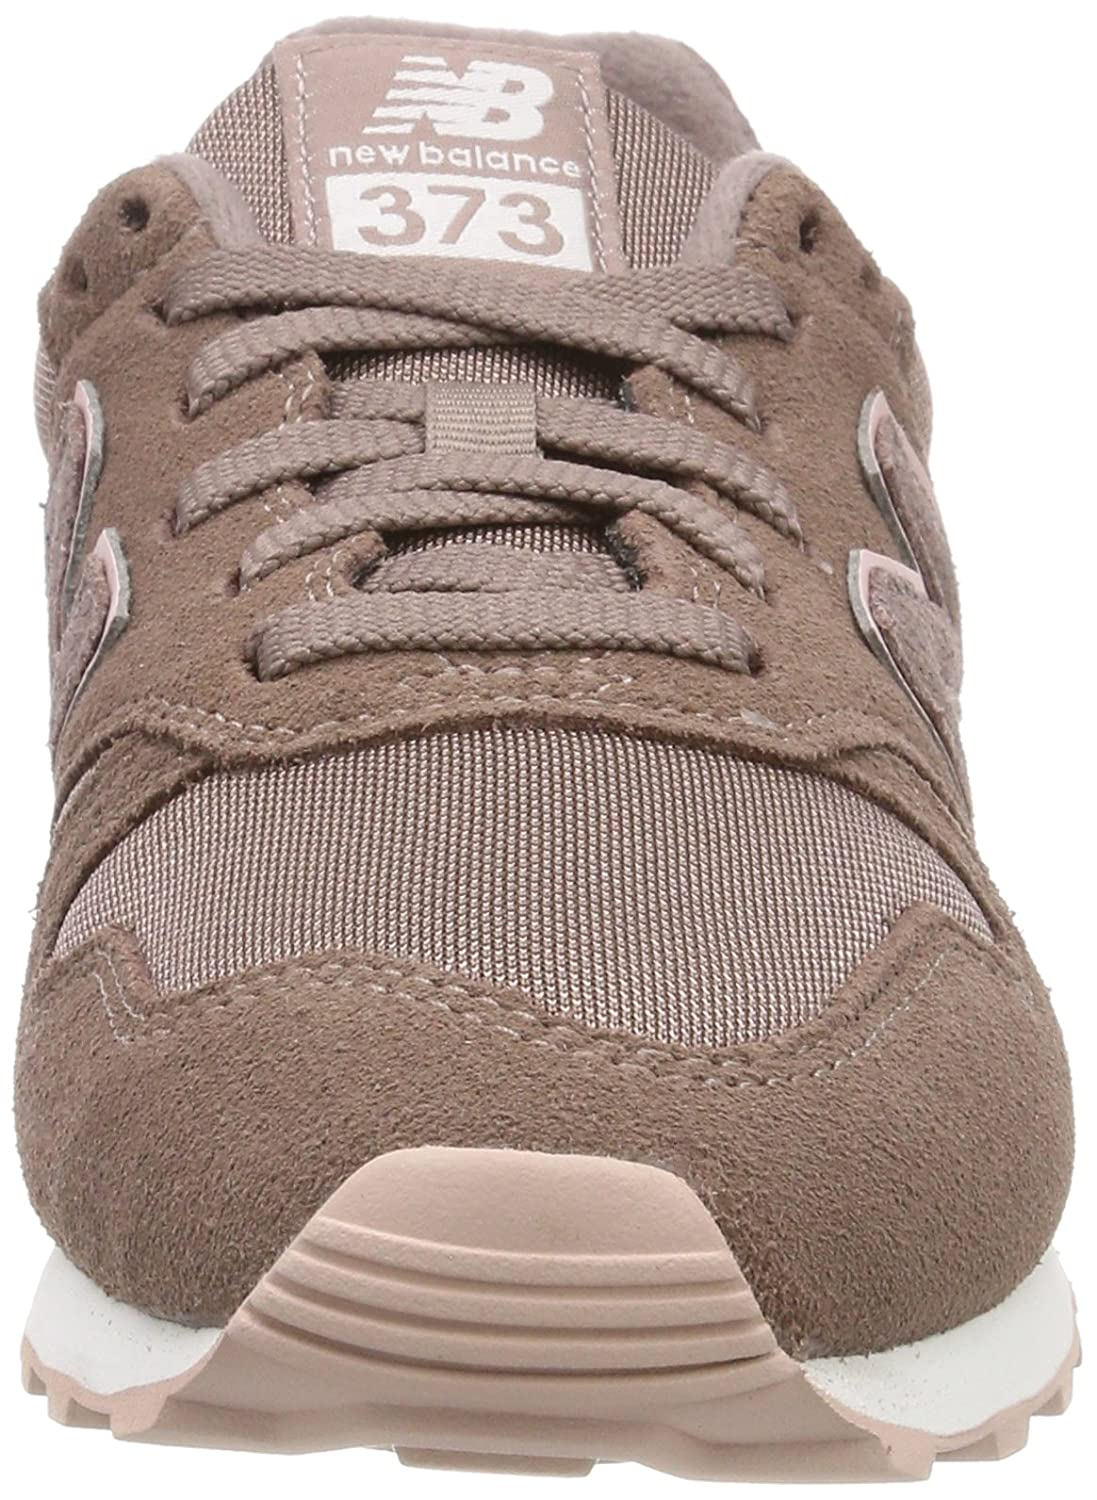 size 40 480aa caa60 New Balance Women's 373 Trainers